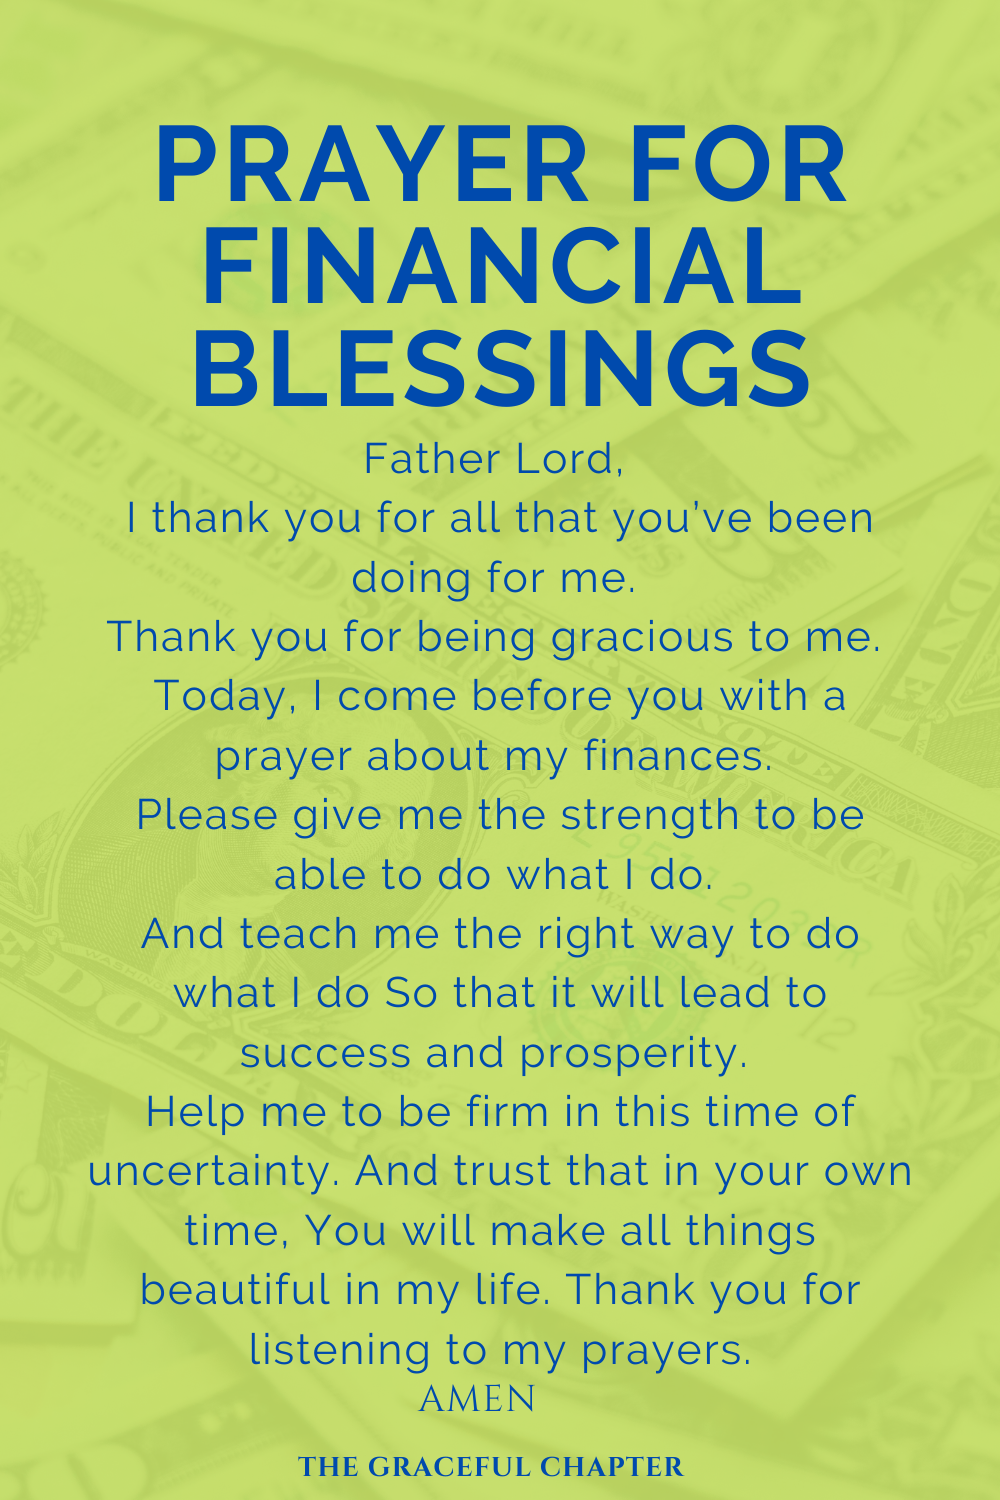 prayer for financial blessings